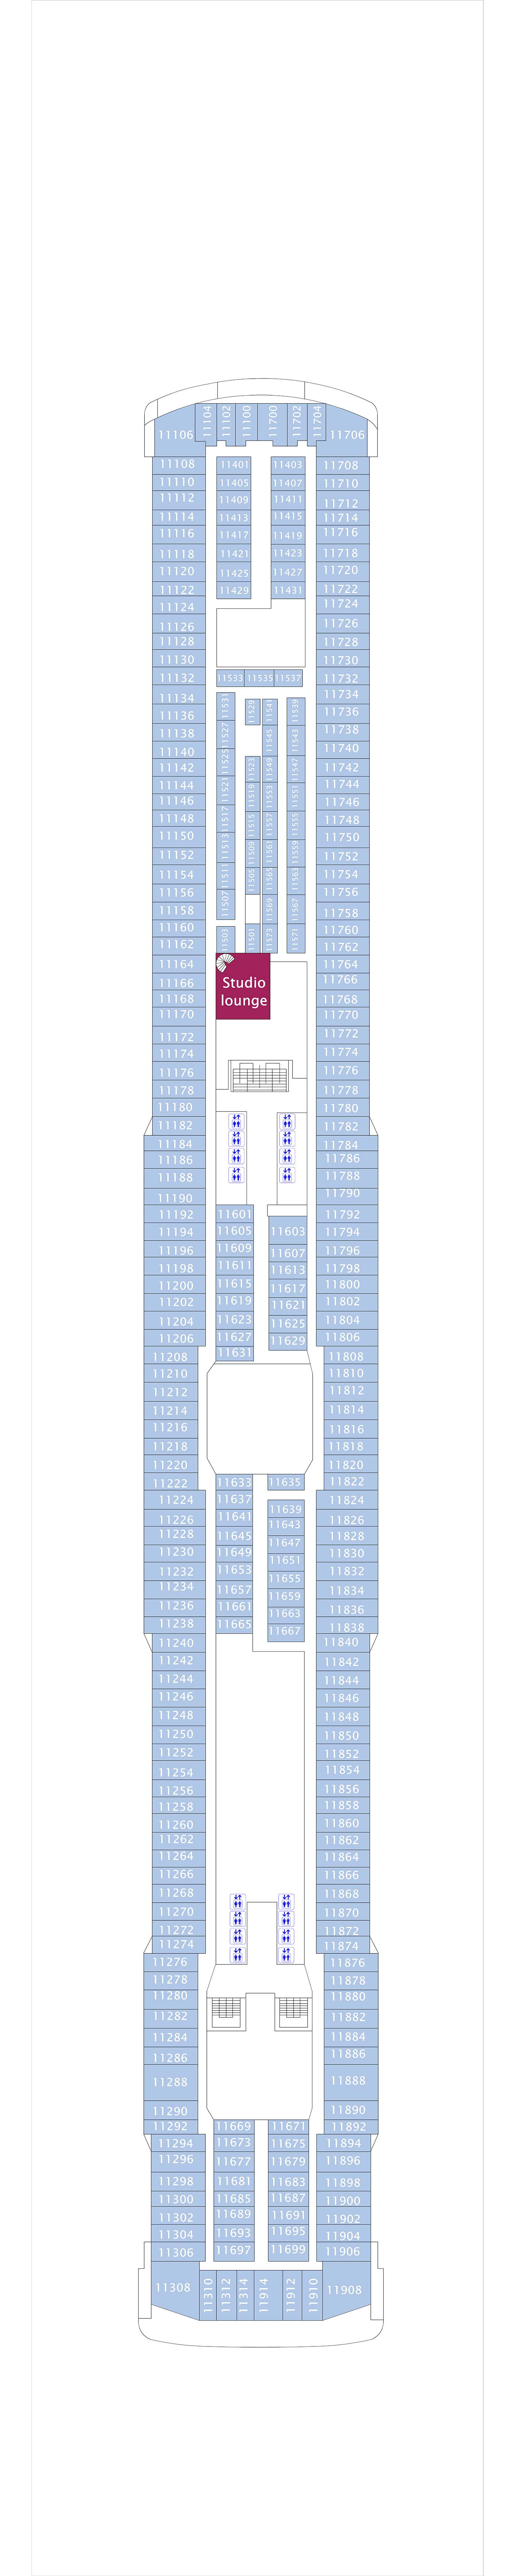 Norwegian Breakaway deck plan 11